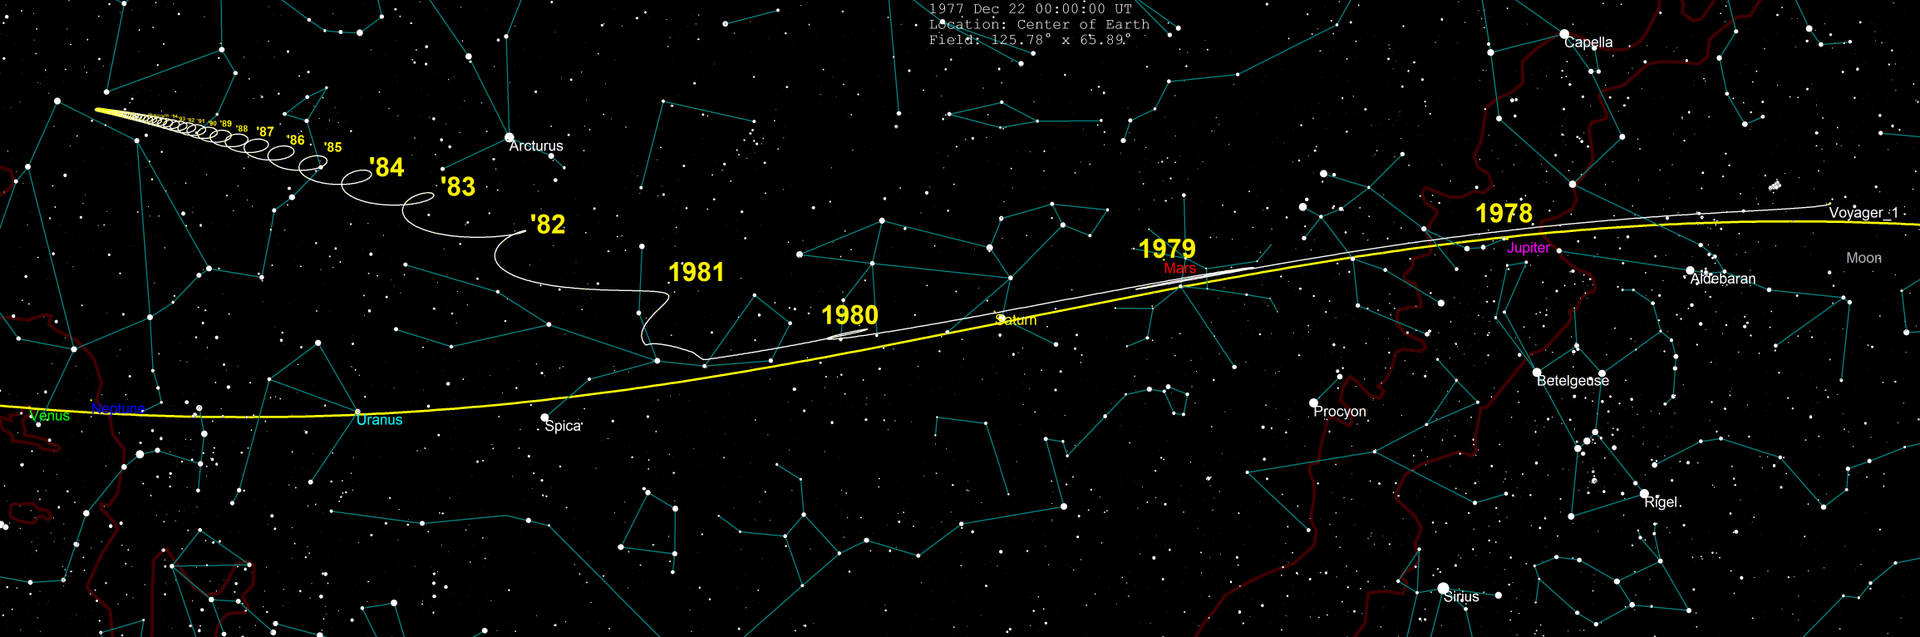 1920px-voyager_1_skypath_1977-2030.png